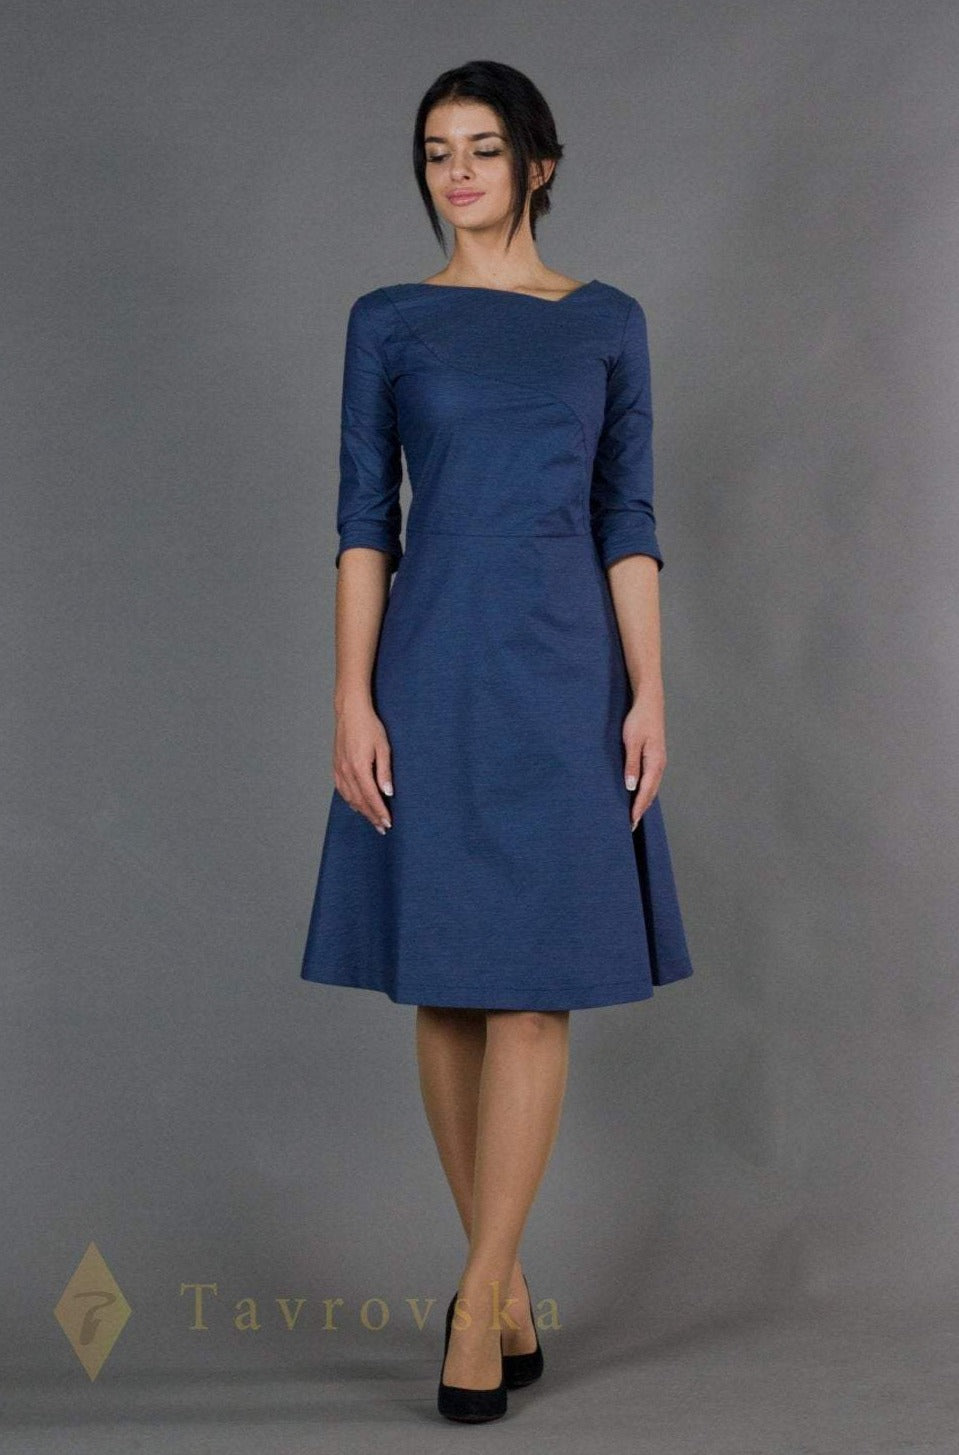 Blue asymmetrical fit and flare dress